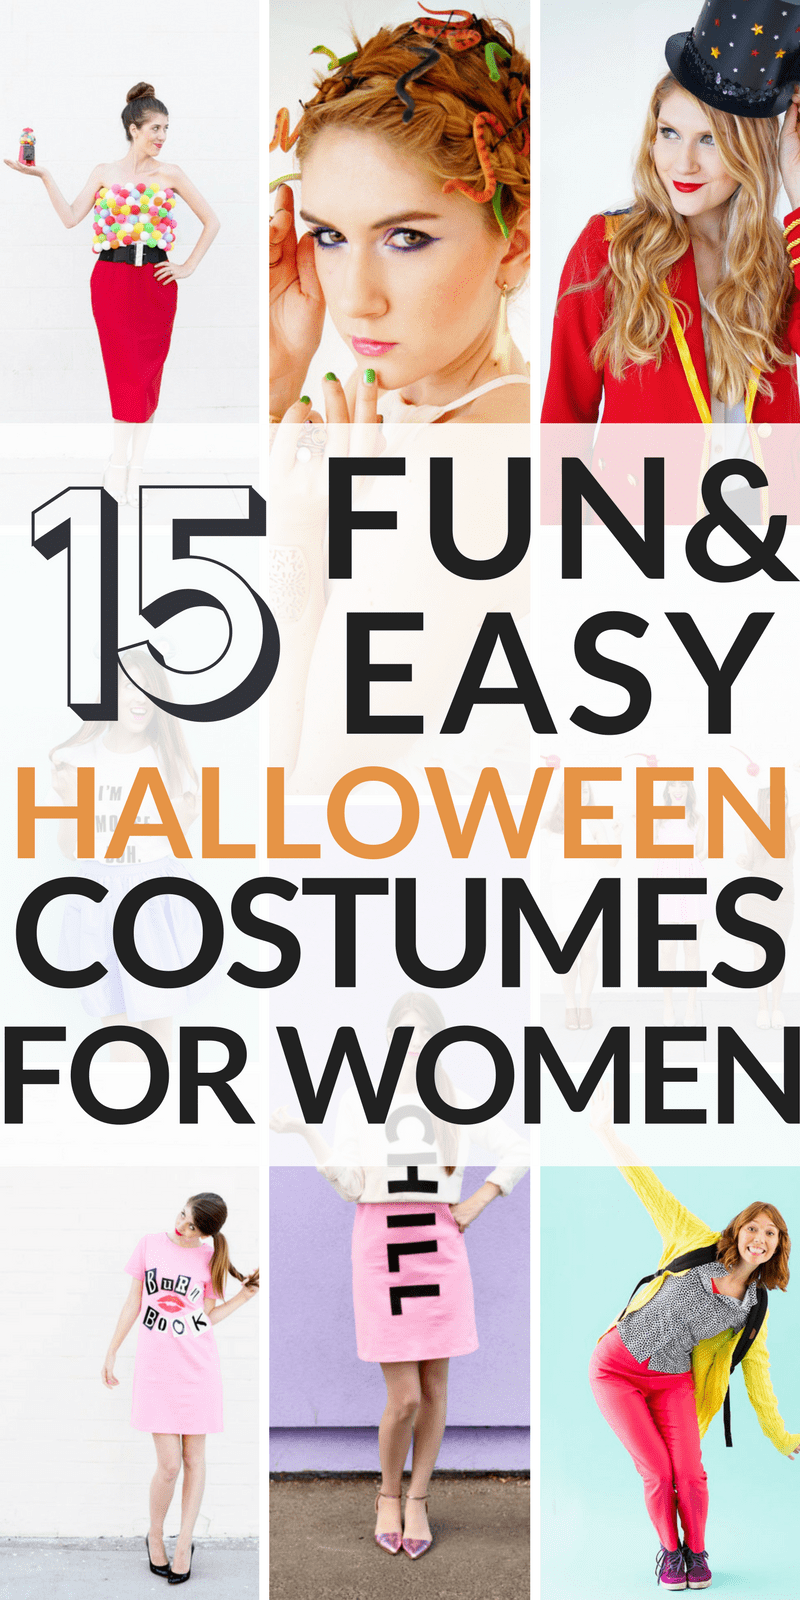 15 mindblowingly cheap and easy diy halloween costumes for women show your savvy skills this